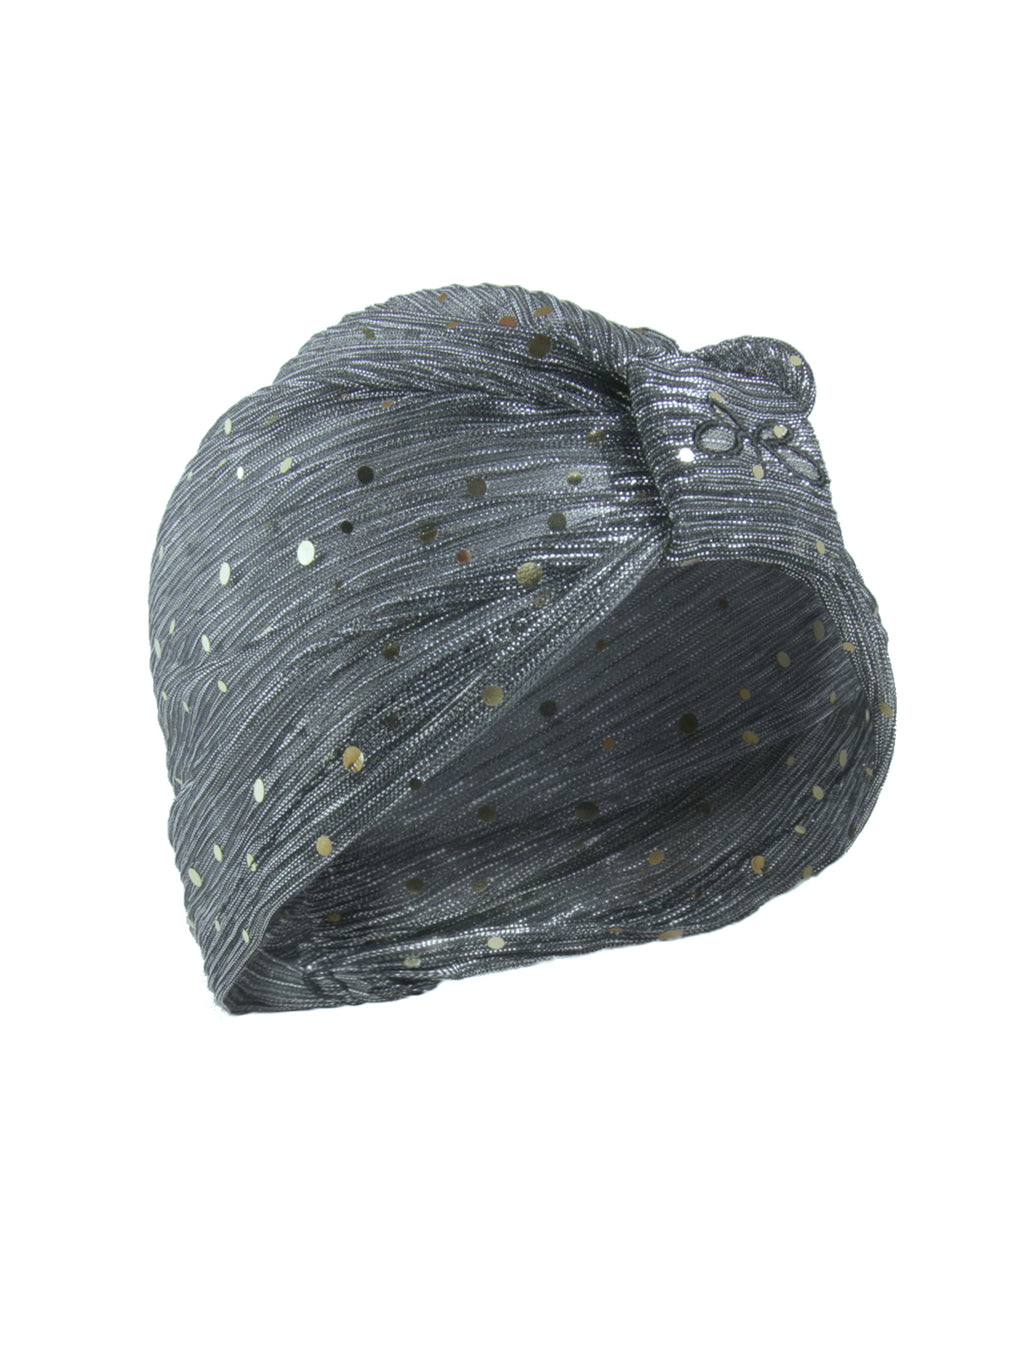 Roberto Ruivo Dubai Grey Sheer Fabric with Sequin and Sparkle Slip on and Off One-Size-Fits-All Turbai Turban